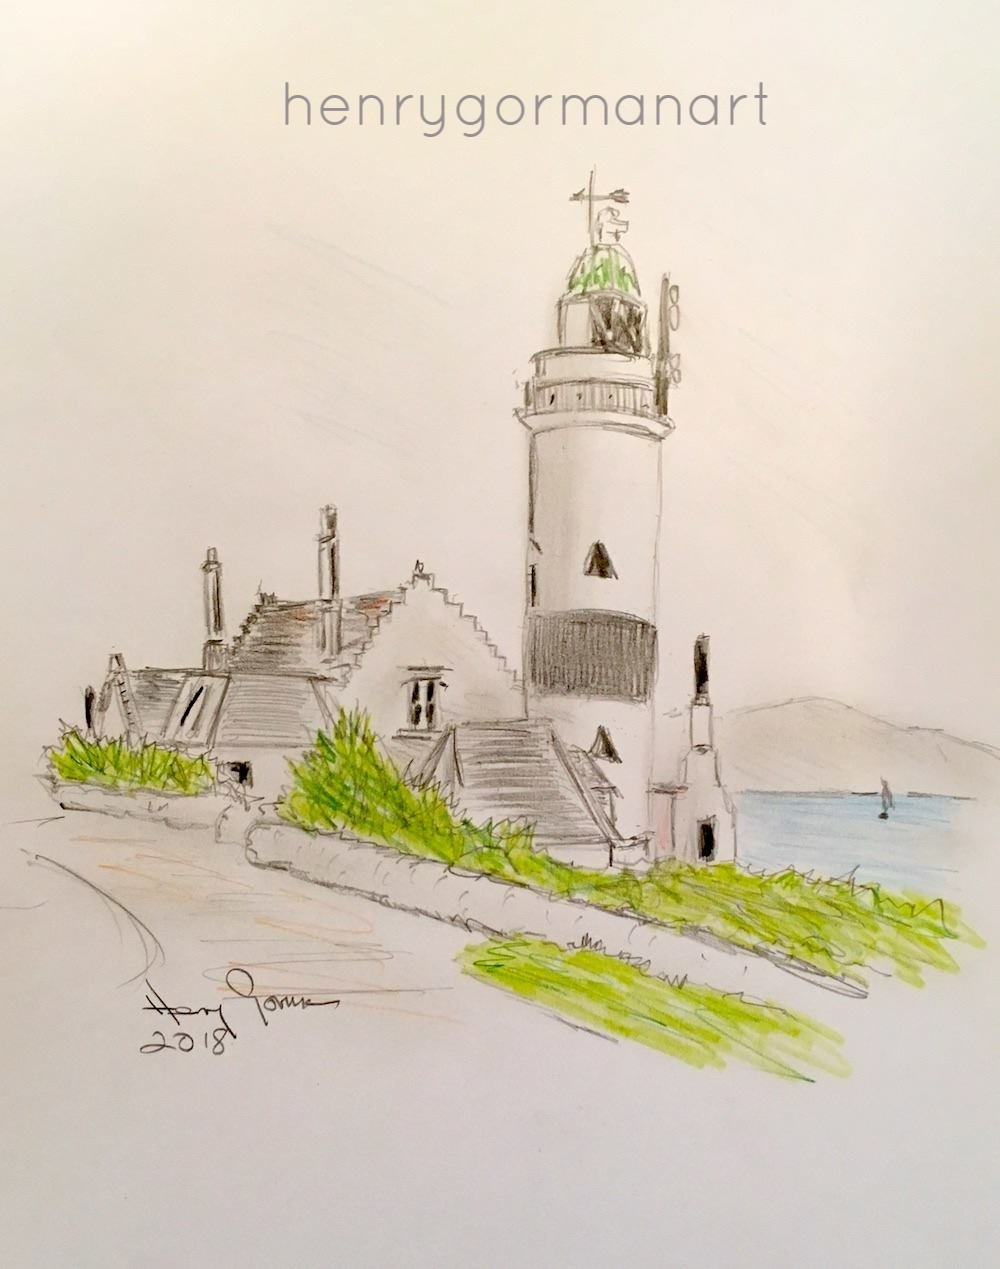 'Cloch Lighthouse' Gourock